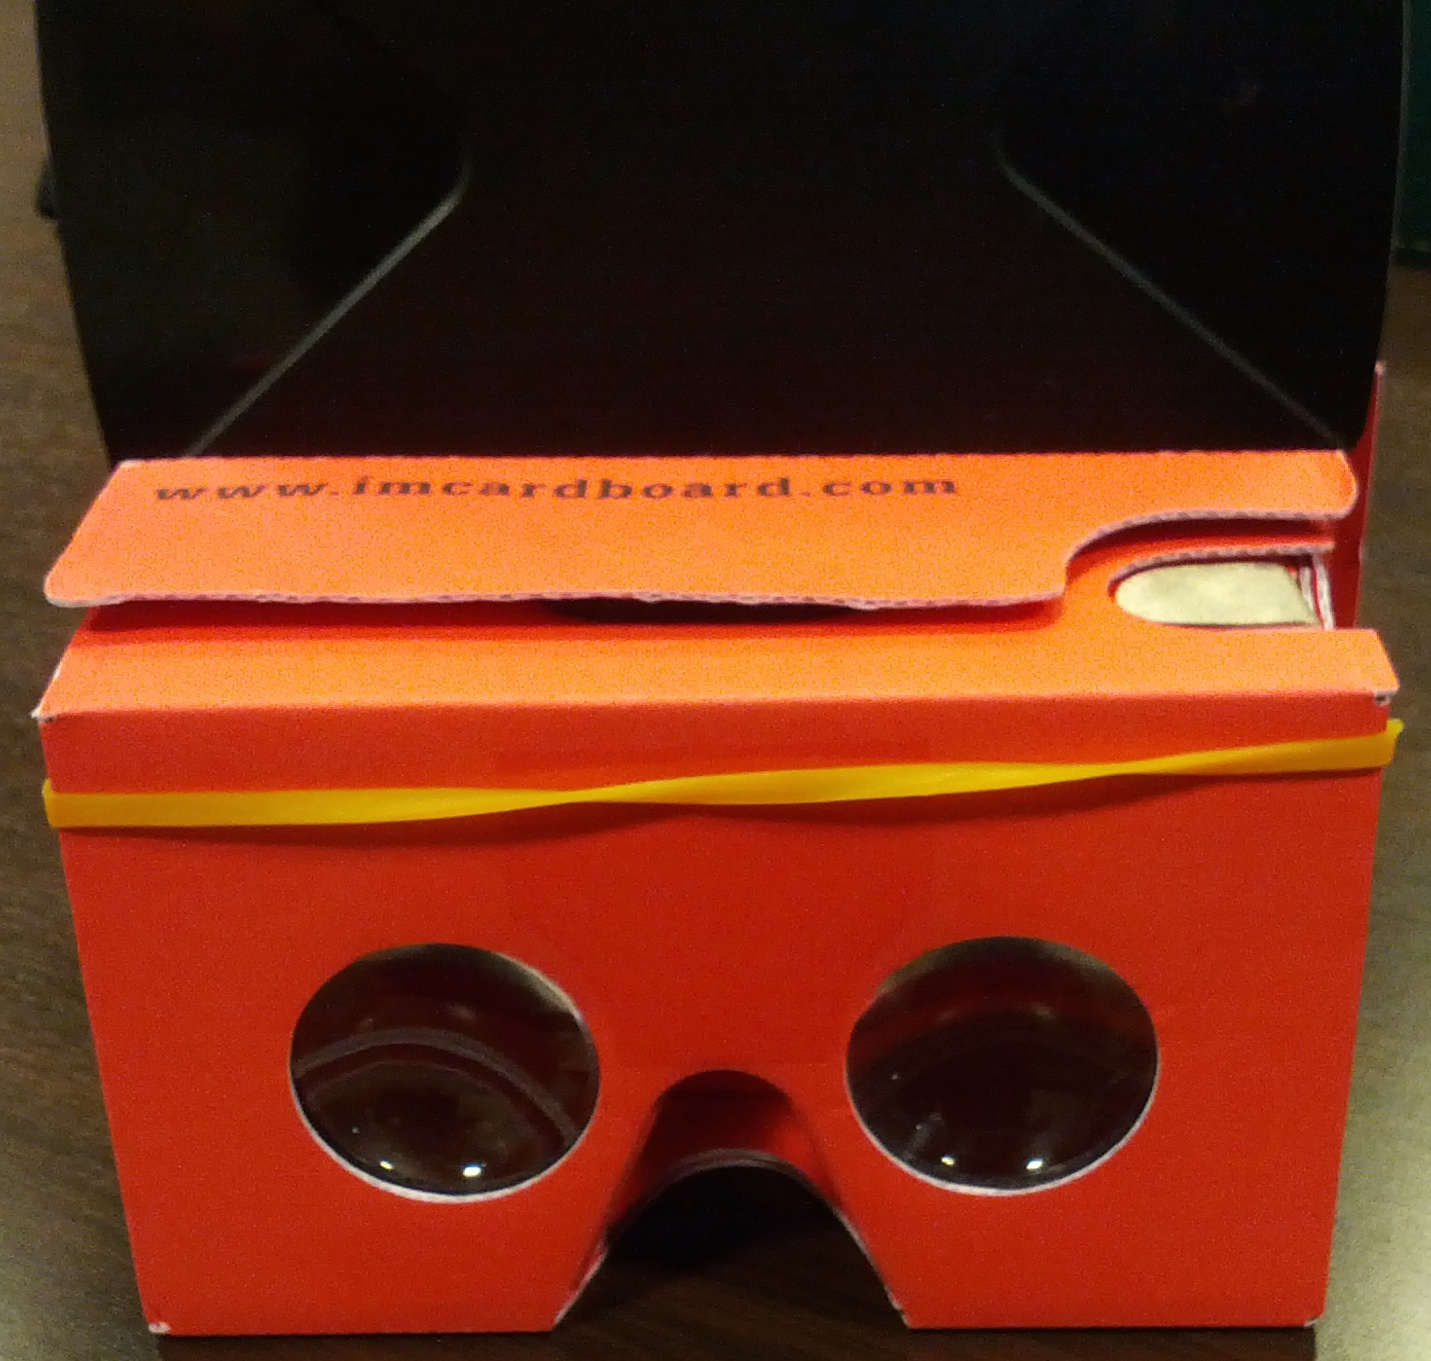 Google Cardboard at GDG